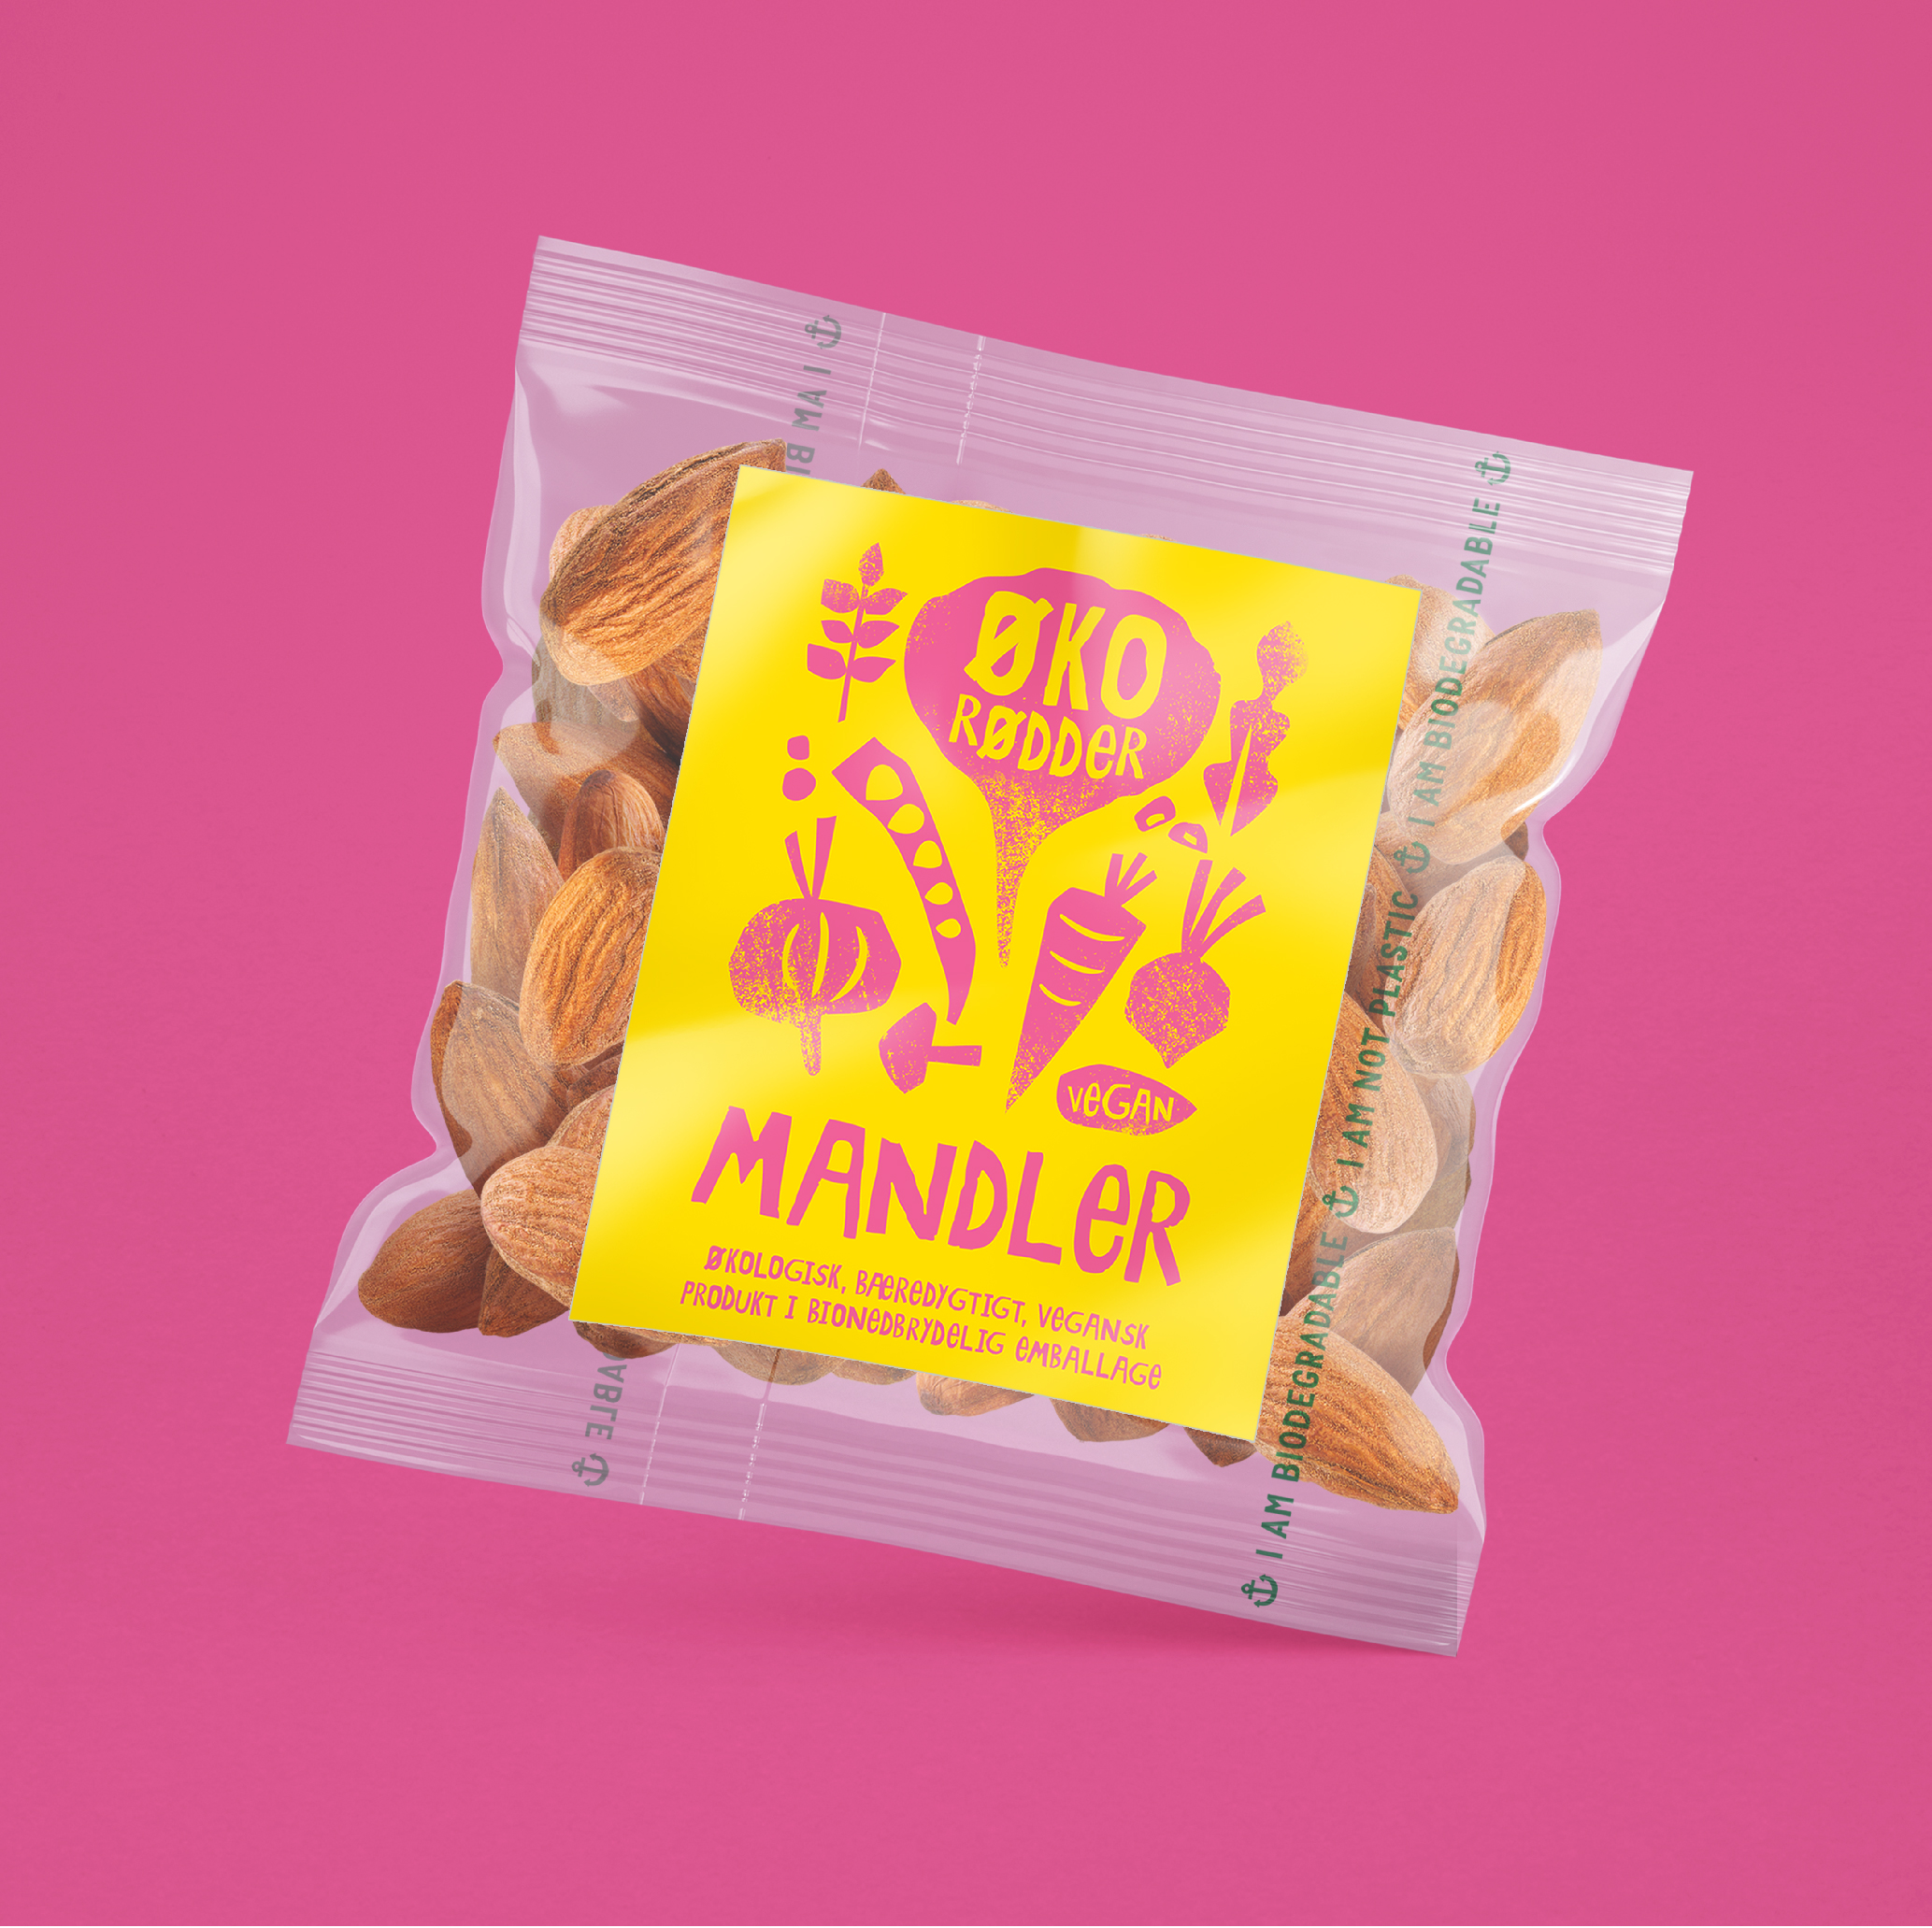 Øko Rødder Almonds Packaging